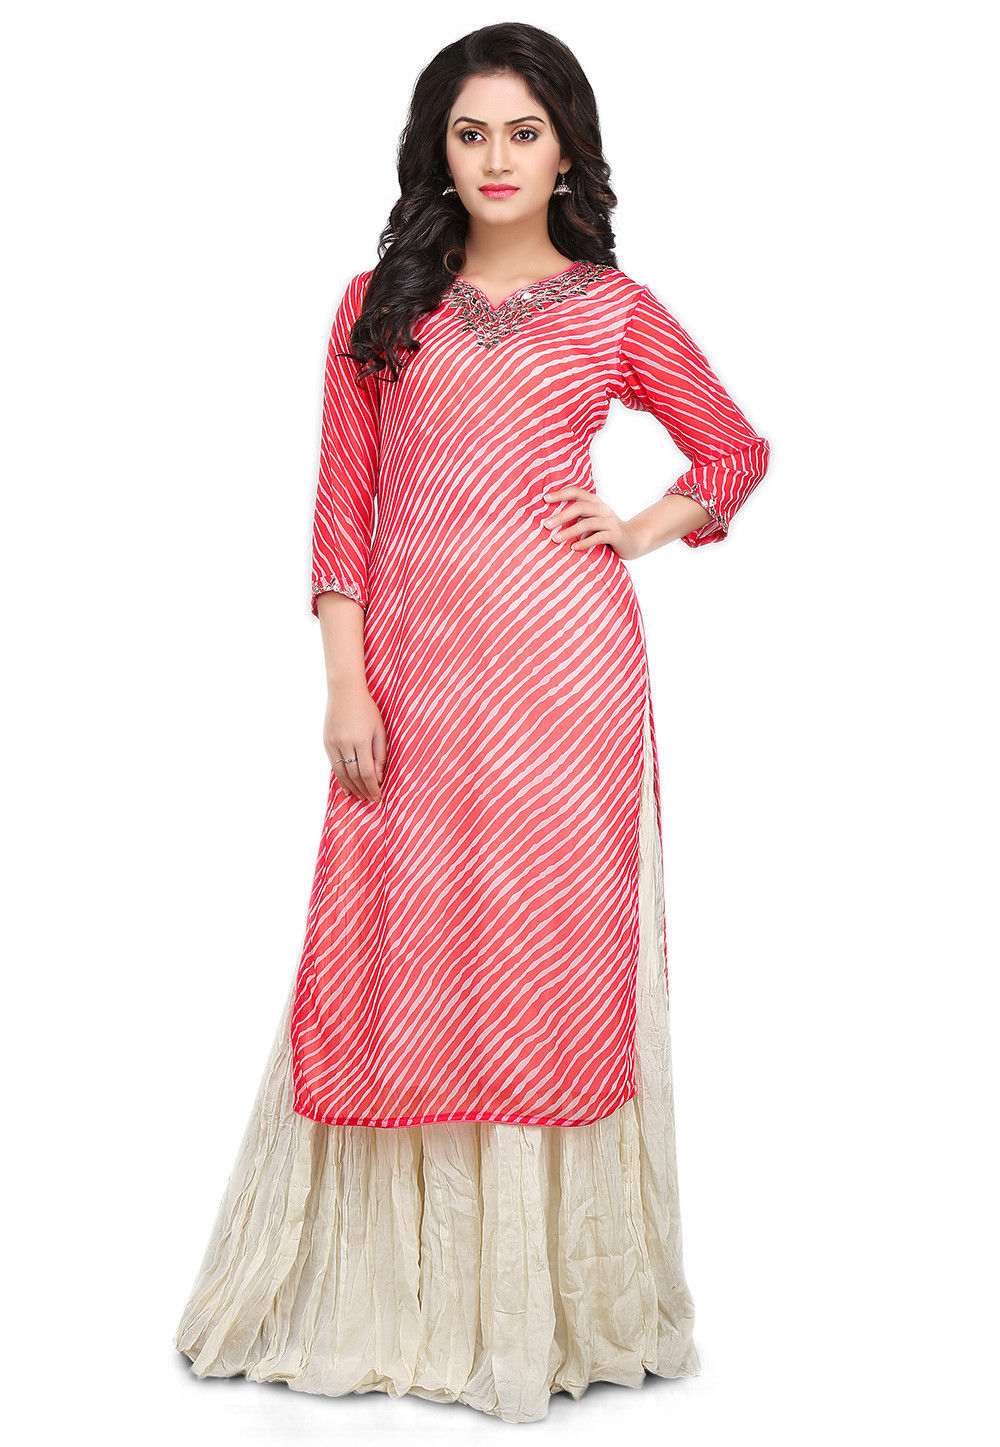 Leheriya Georgette Kurta Set in Coral and White